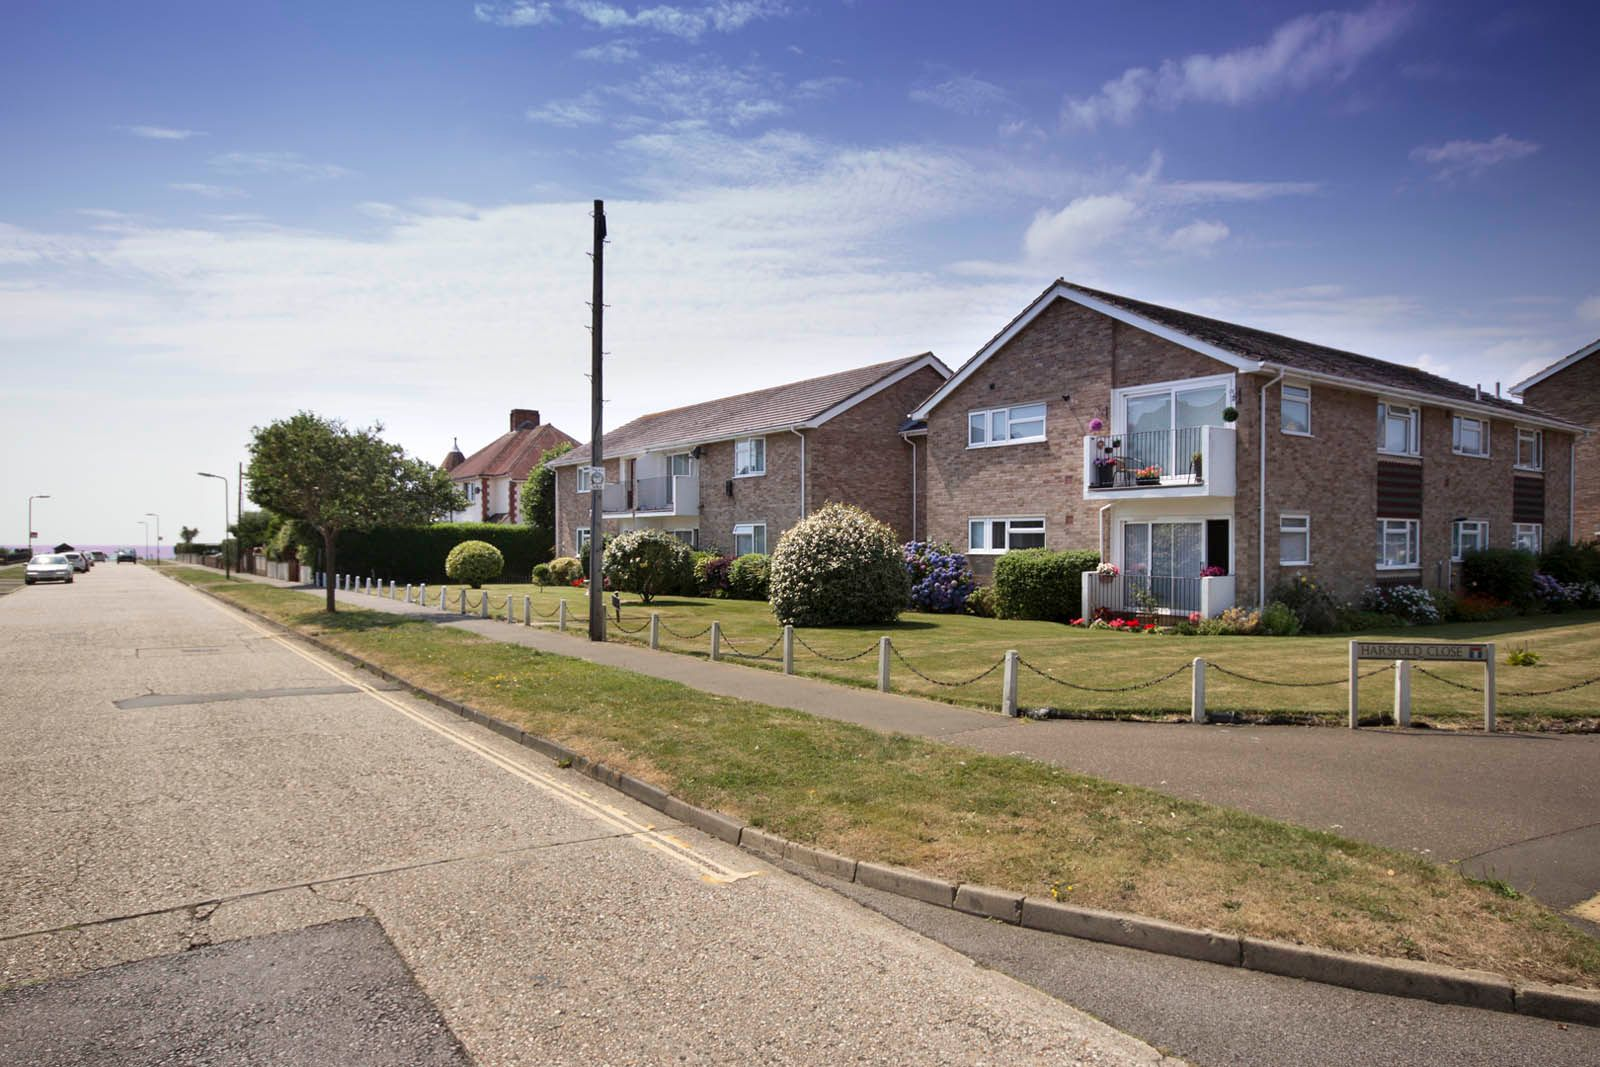 2 bed Apartment for sale in Rustington - View from the road (Property Image 7)